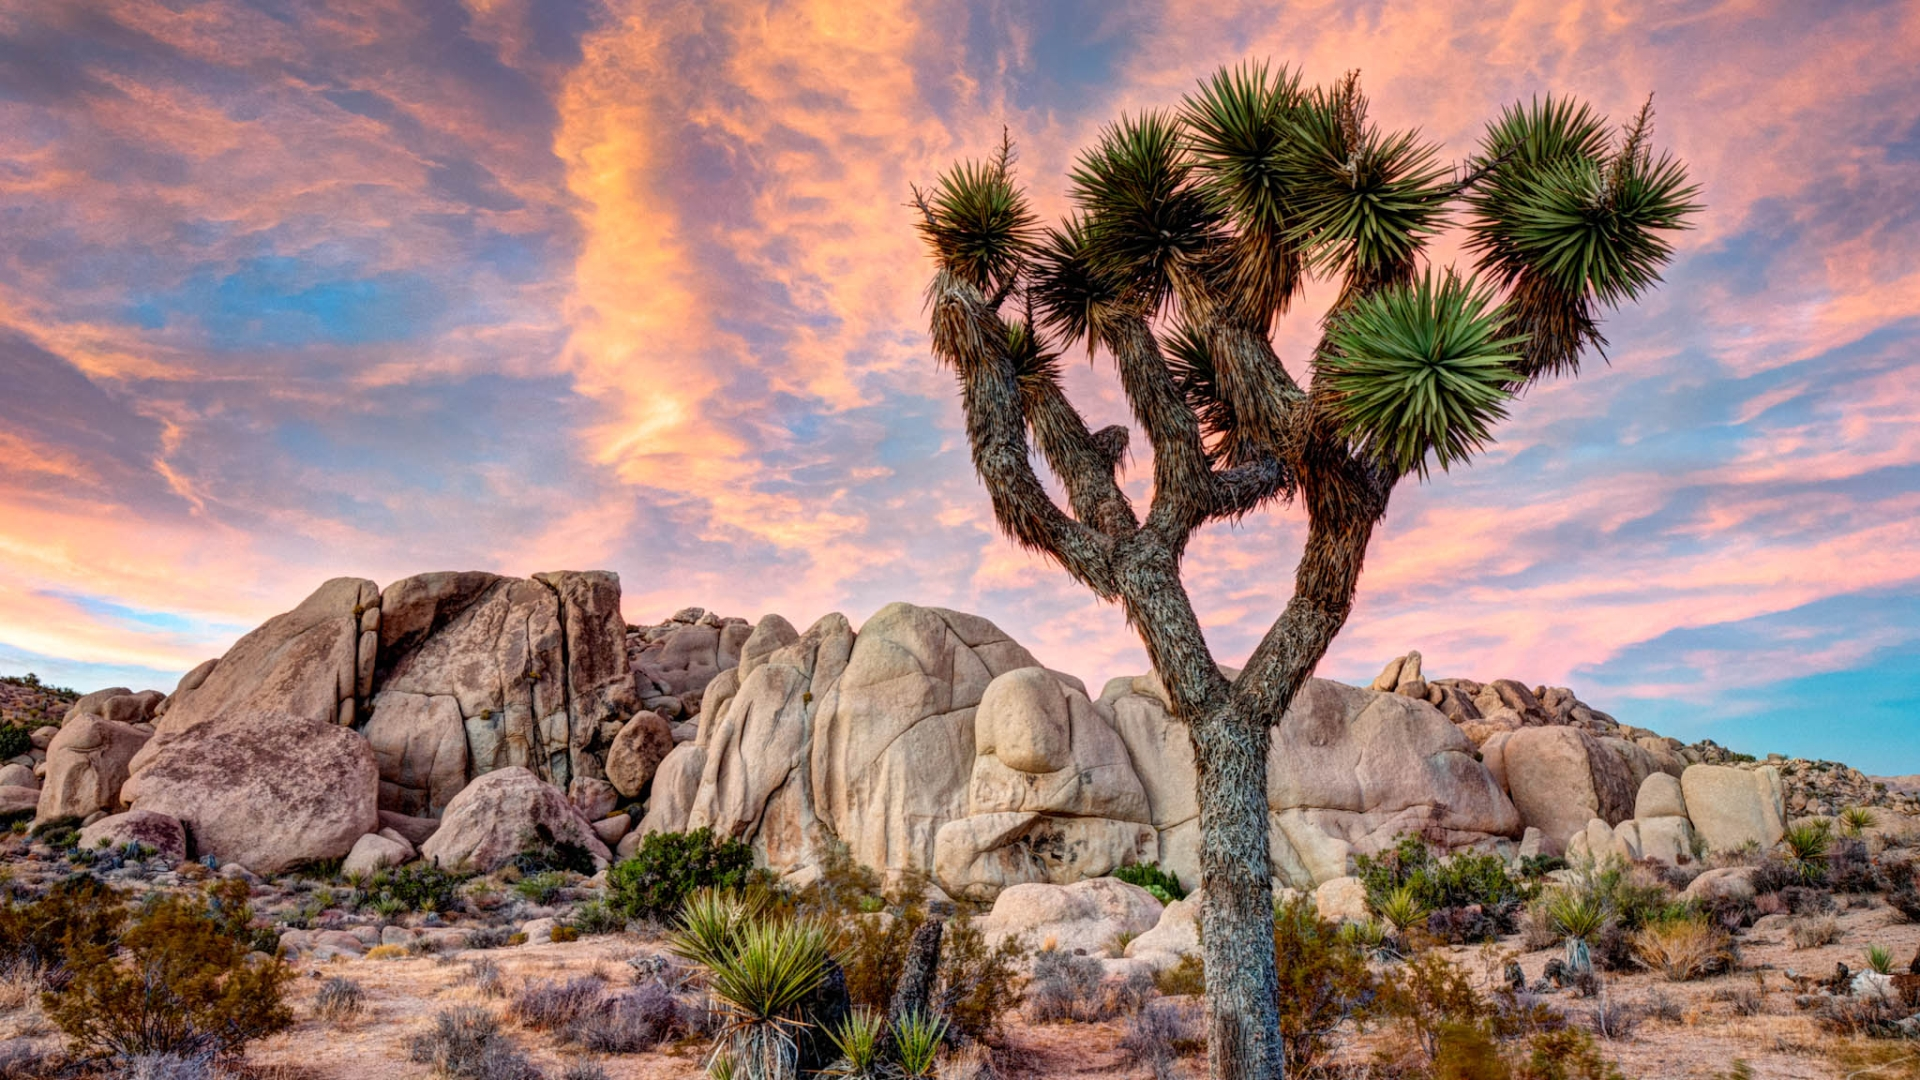 Joshua Tree National Park #7